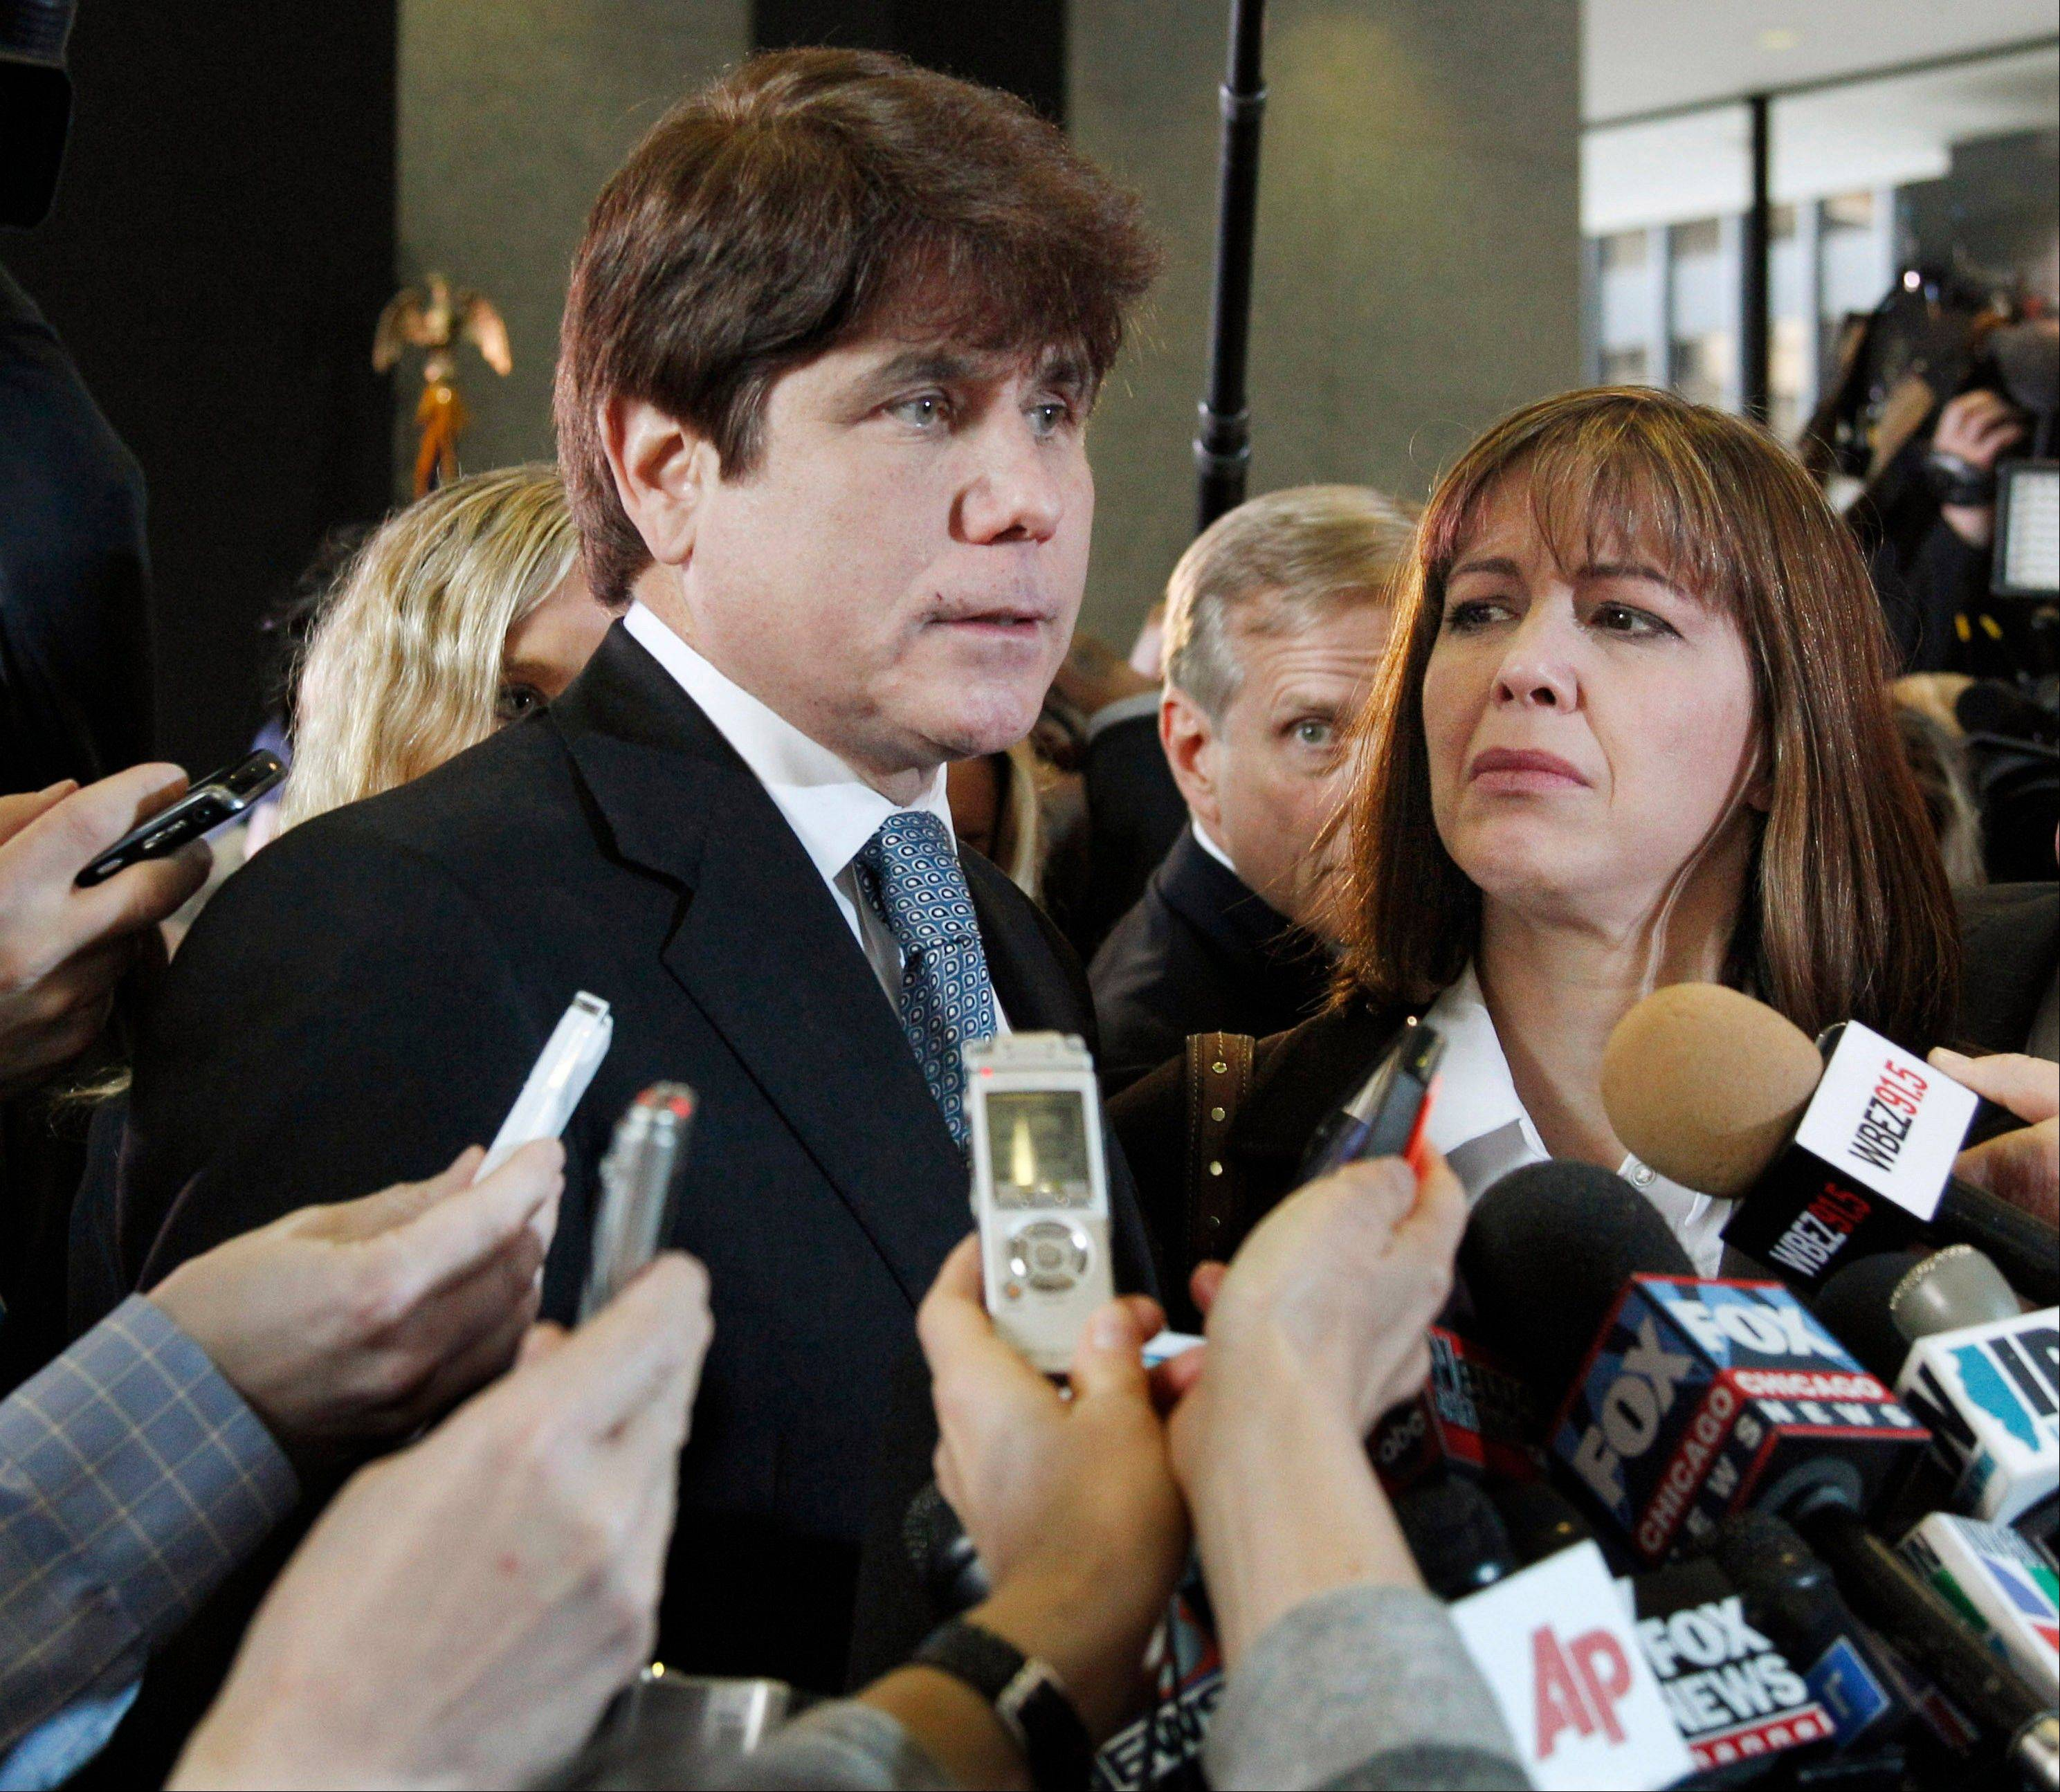 Former Gov. Rod Blagojevich speaks to reporters as his wife, Patti, listens at the federal building in Chicago after he was sentenced to 14 years in prison.